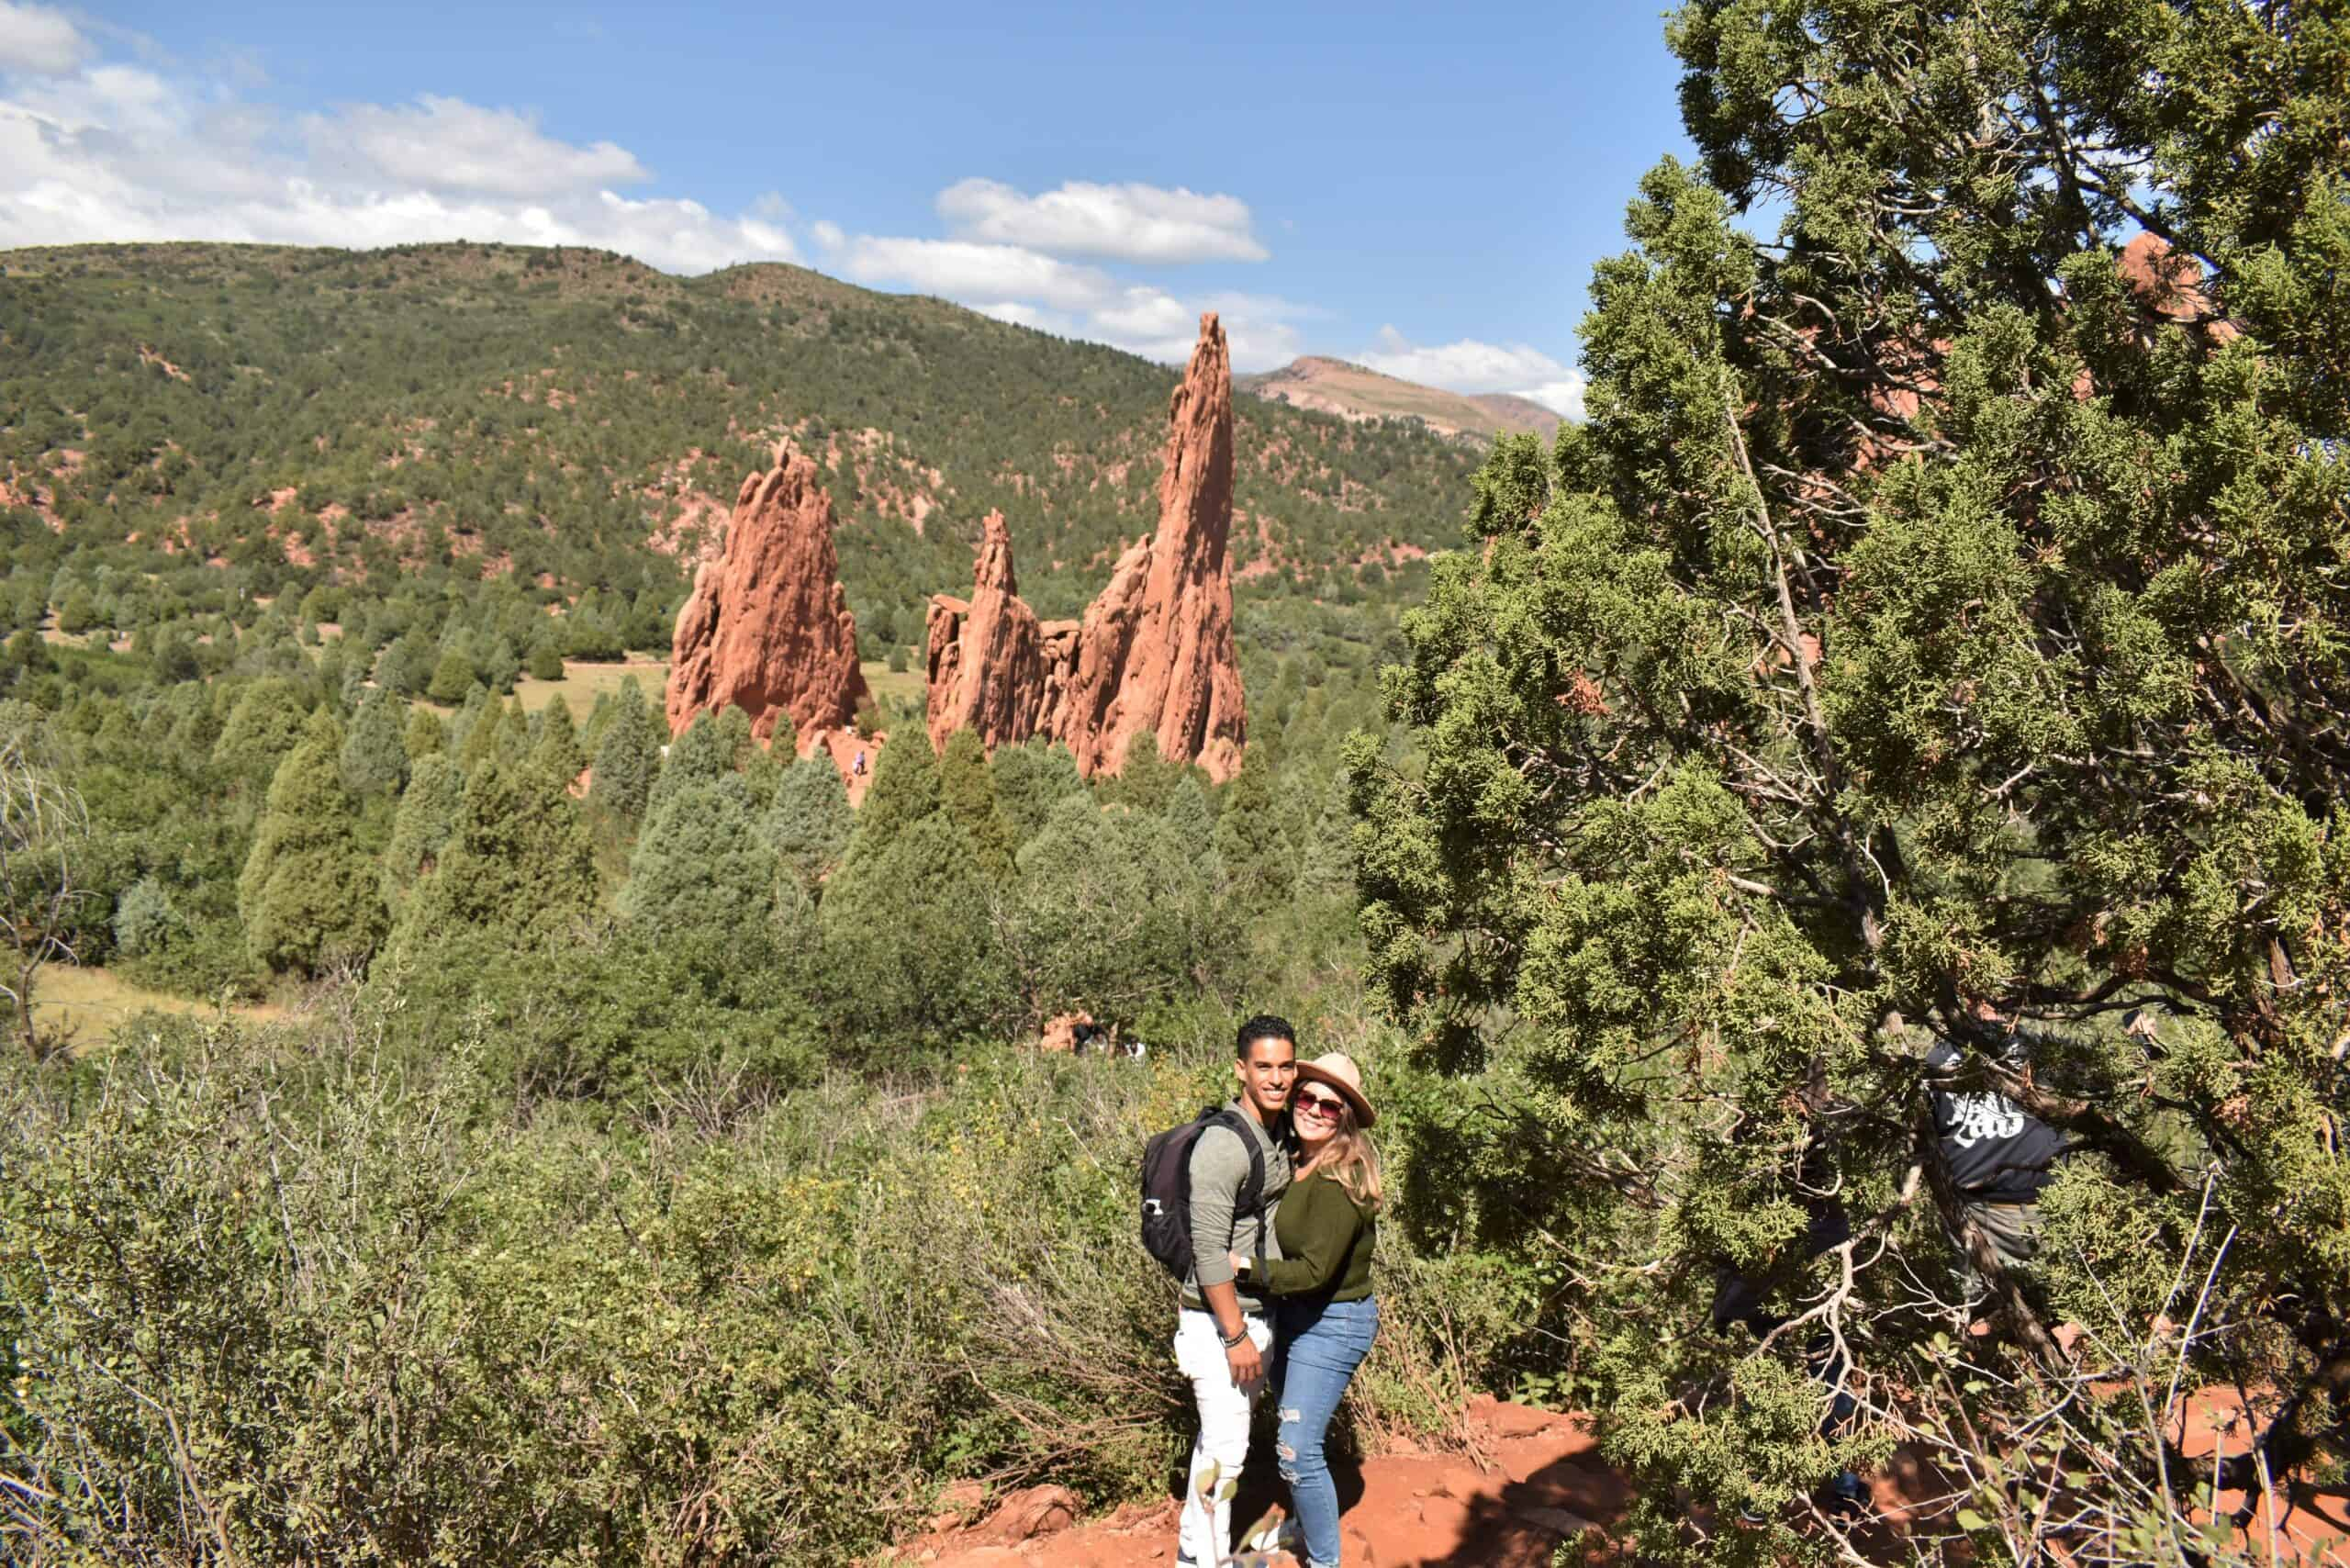 Hike in Garden of the Gods